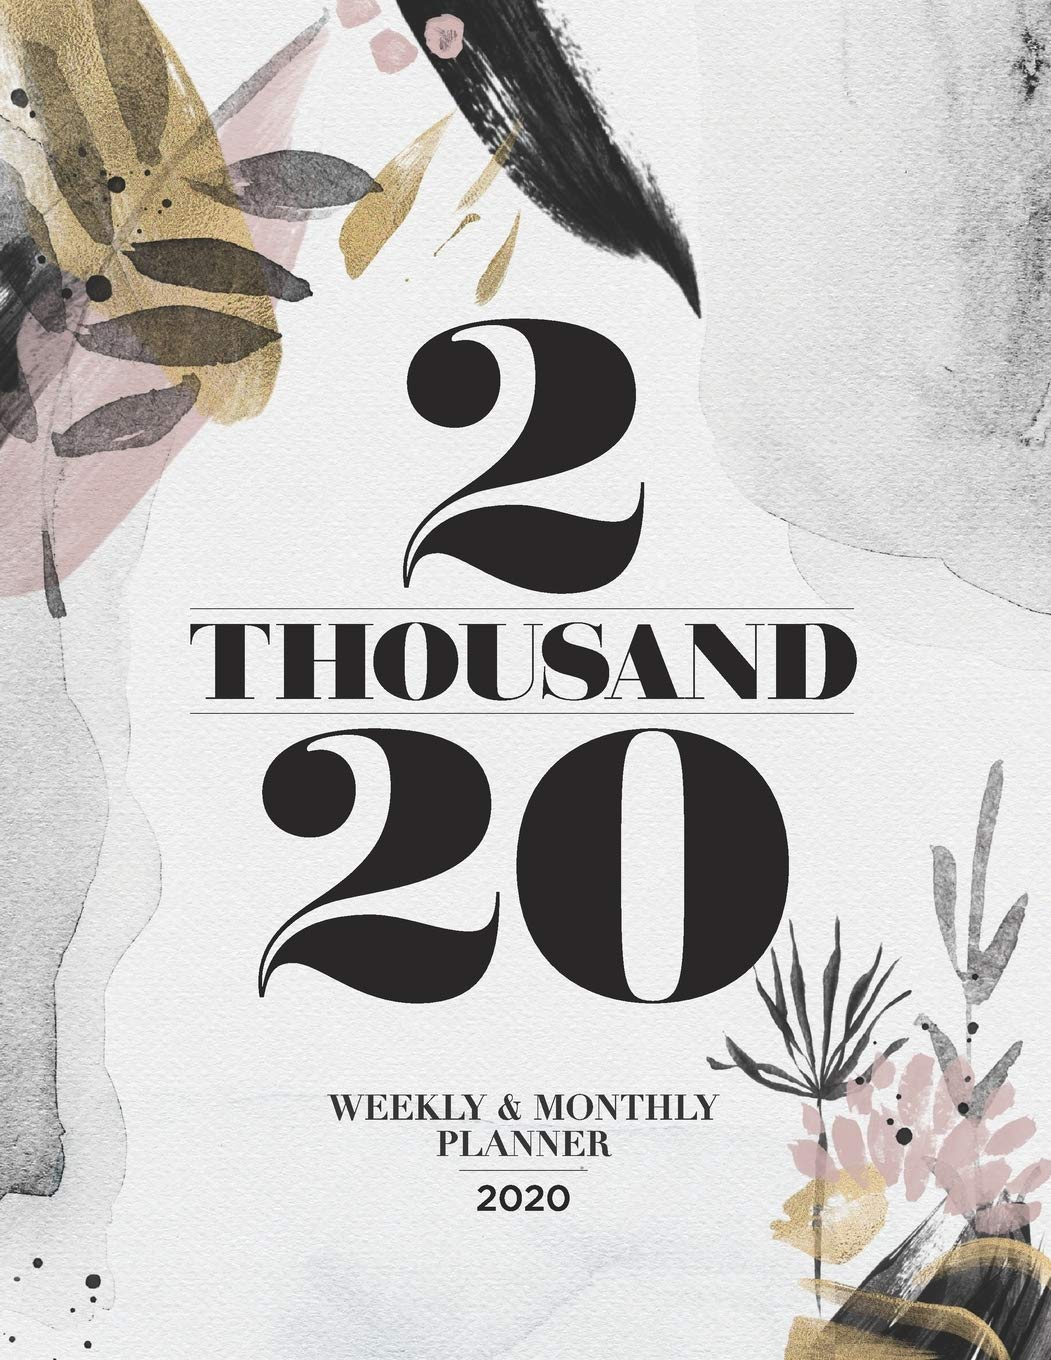 Amazon.com: 2 Thousand 20, Weekly and Monthly Planner 2020 ...